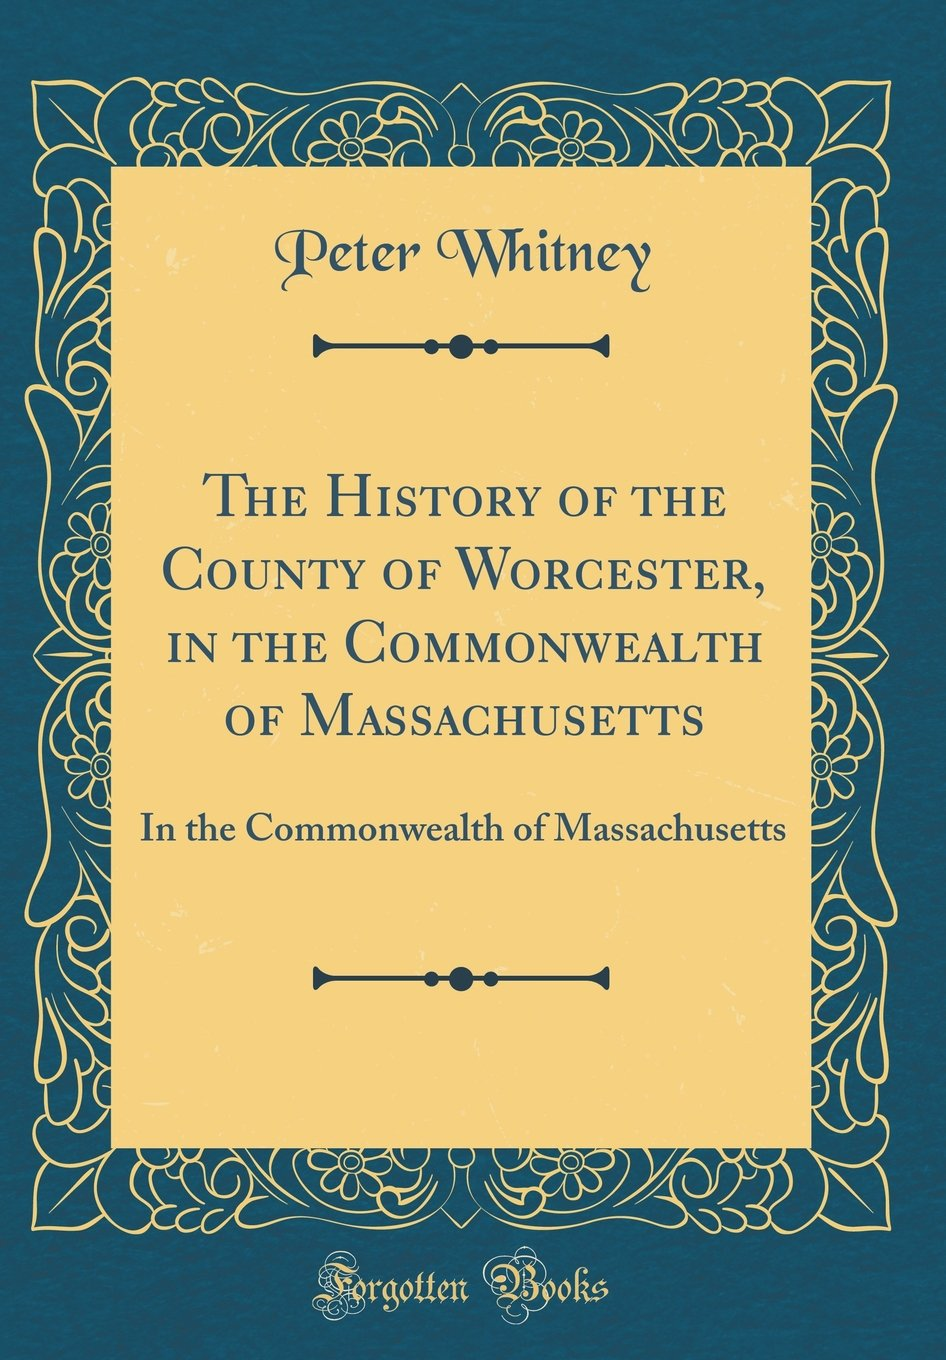 The History of the County of Worcester, in the Commonwealth of Massachusetts: In the Commonwealth of Massachusetts (Classic Reprint) PDF